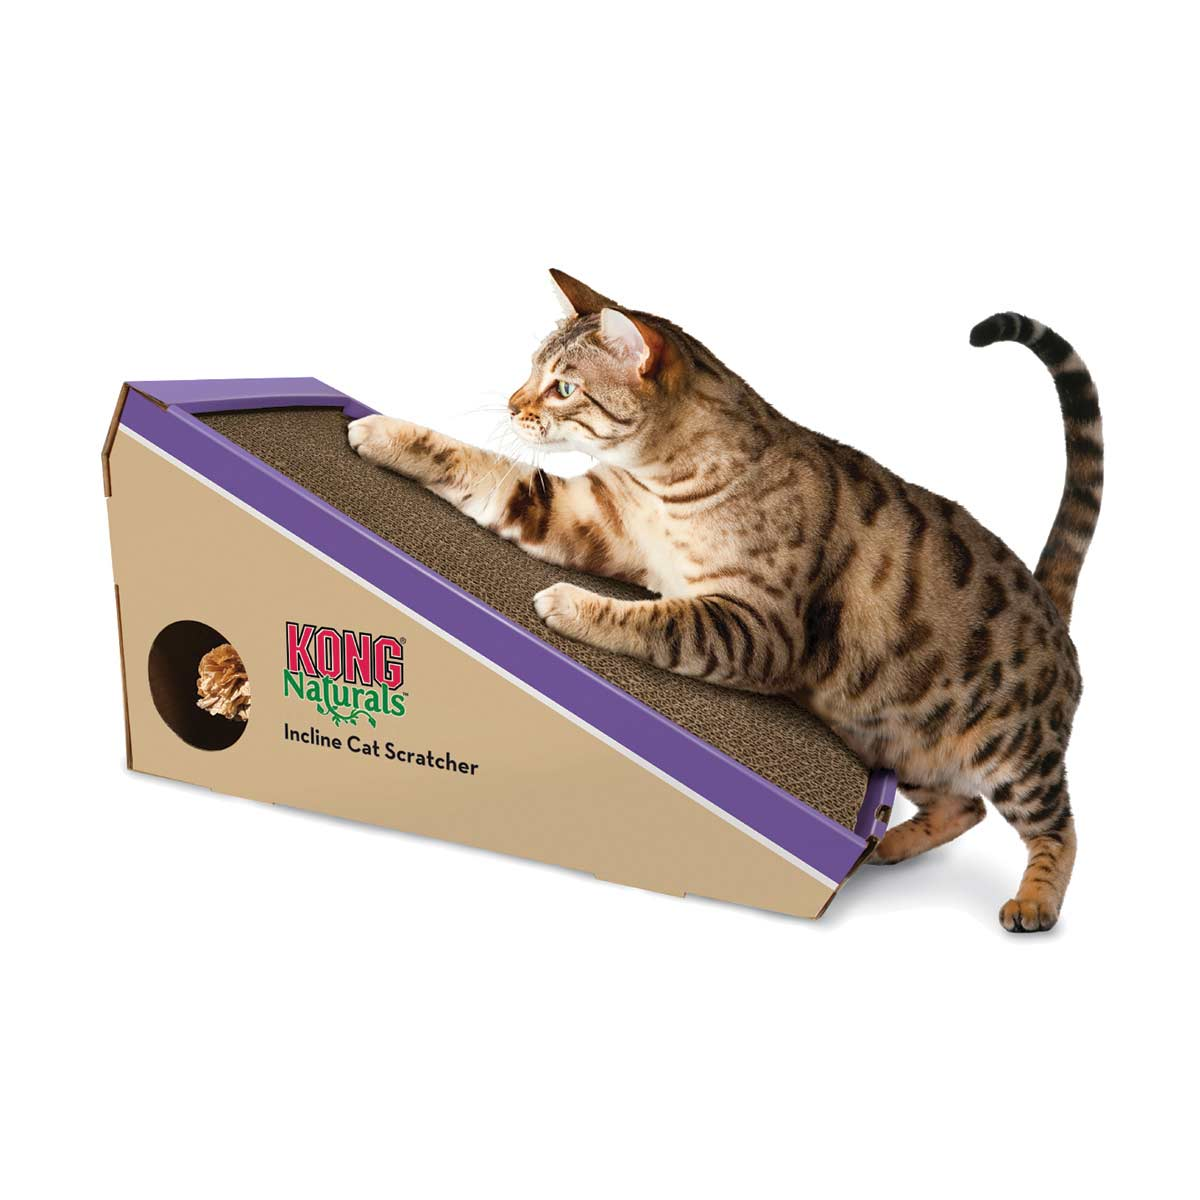 KONG Incline Scratcher for Cats at Ryan's Pet Supplies